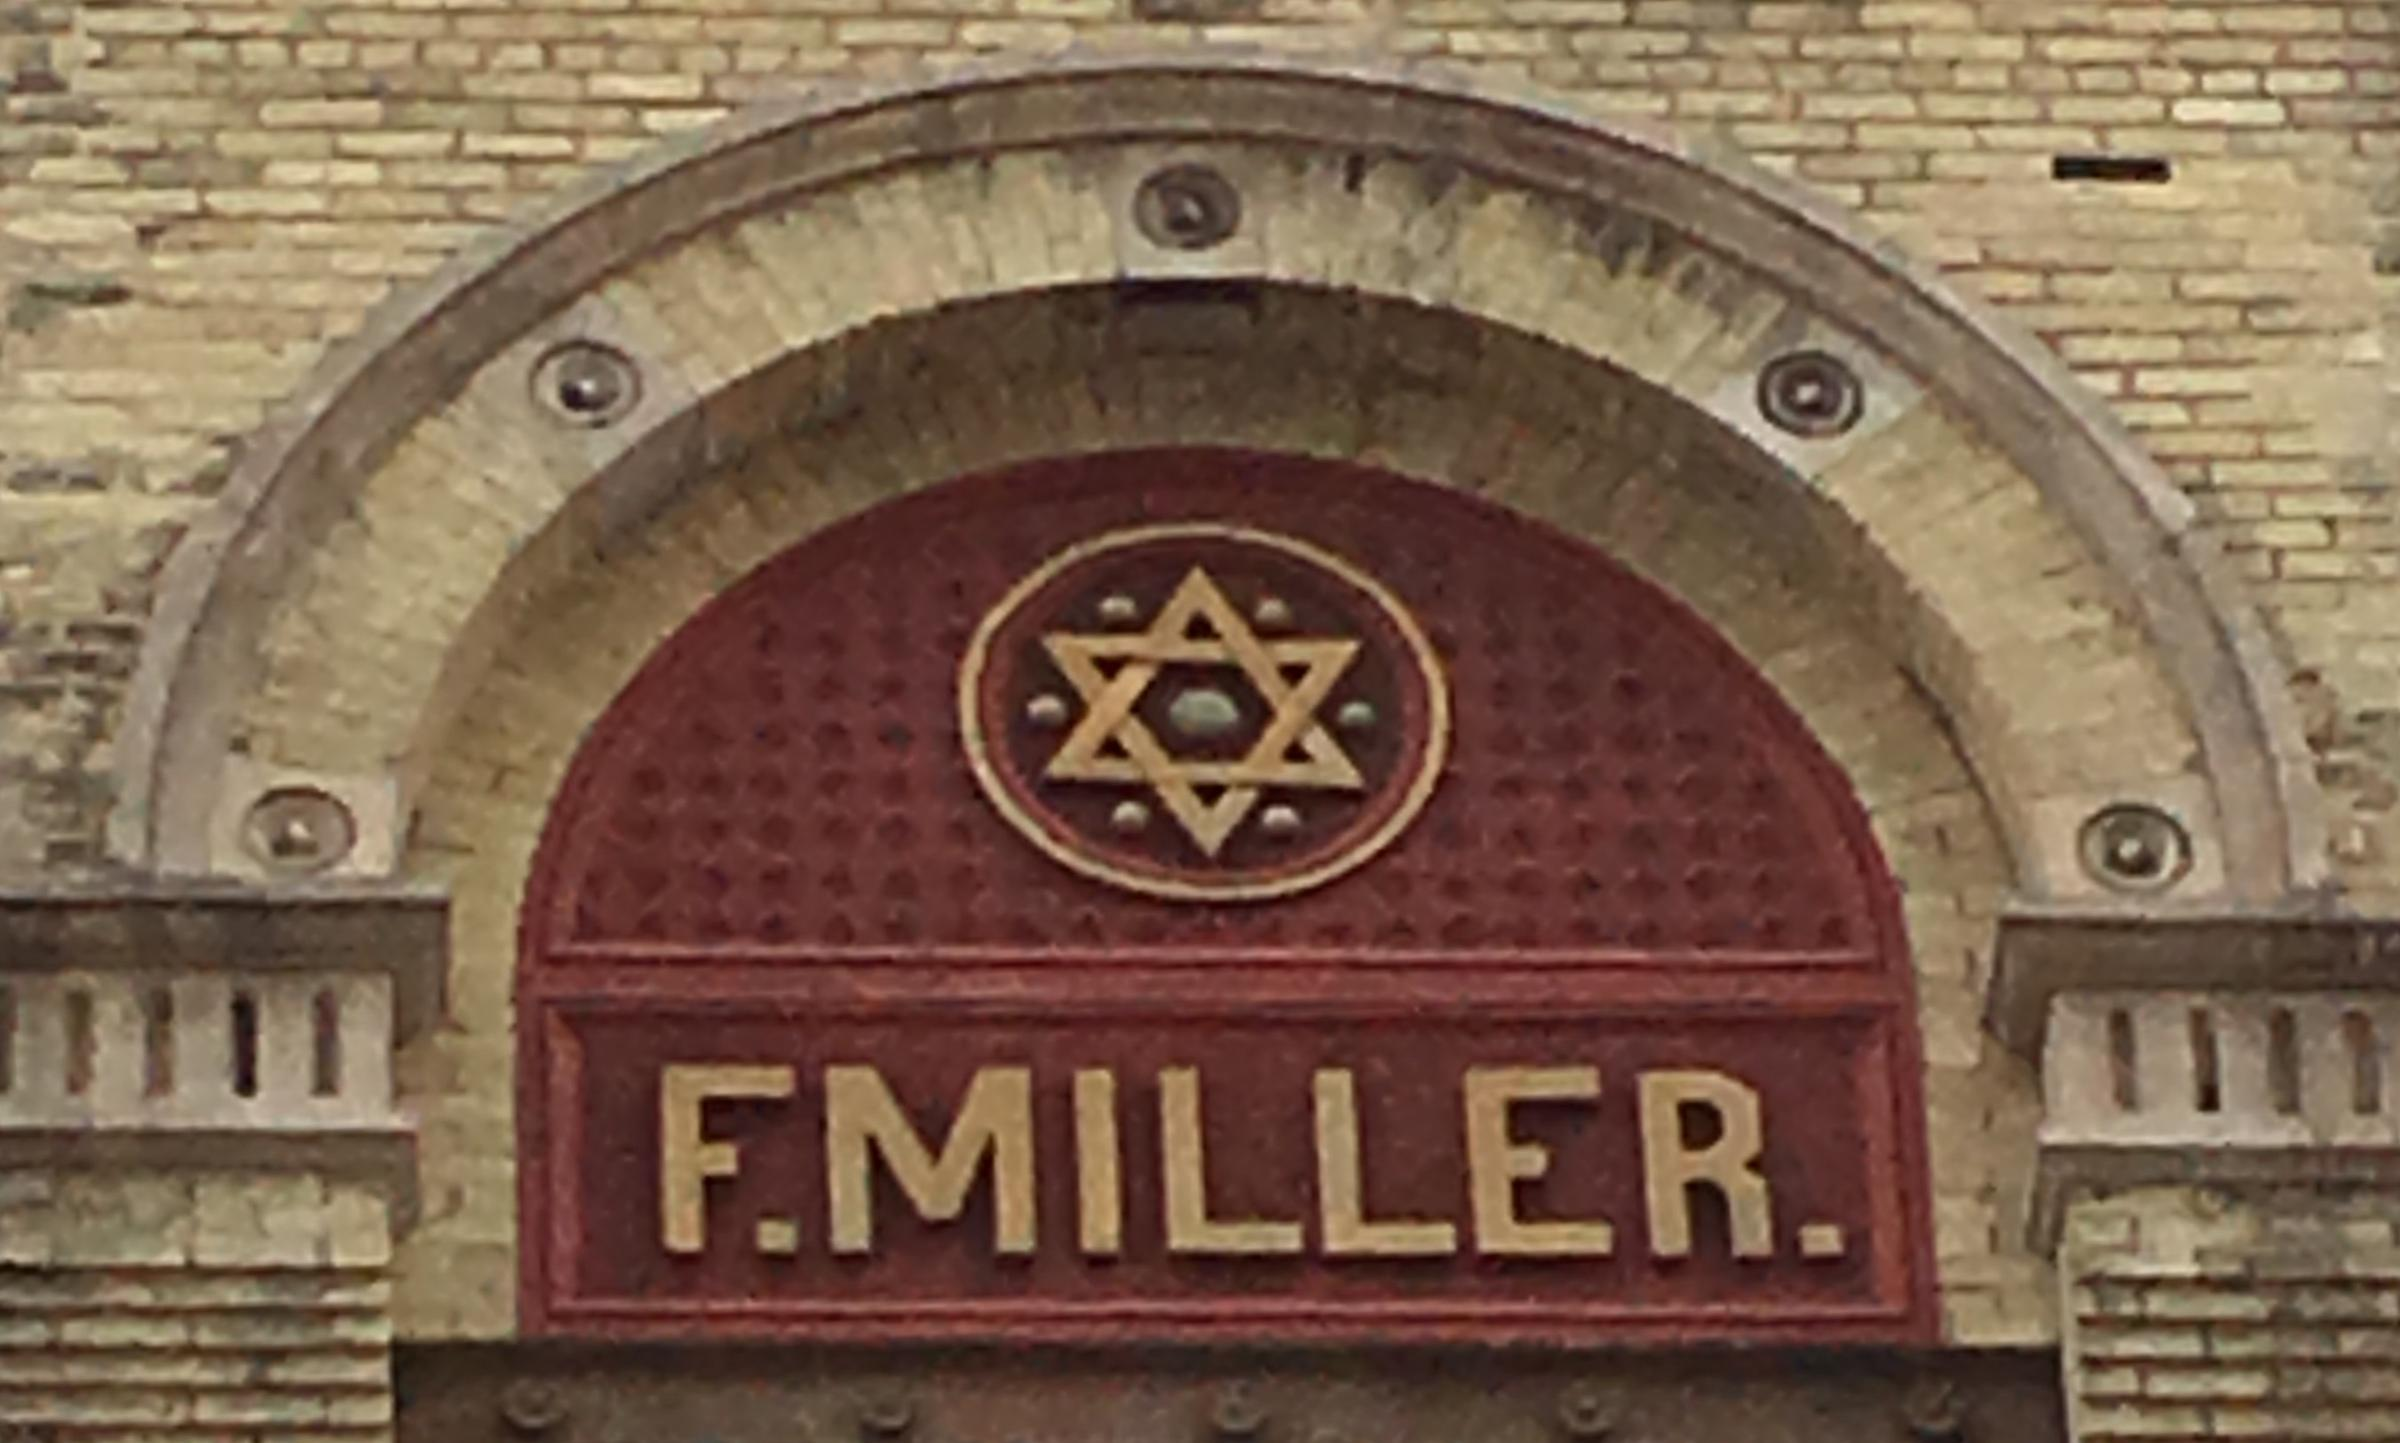 Is There A Star Of David On The Original Miller Brewhouse Well Not